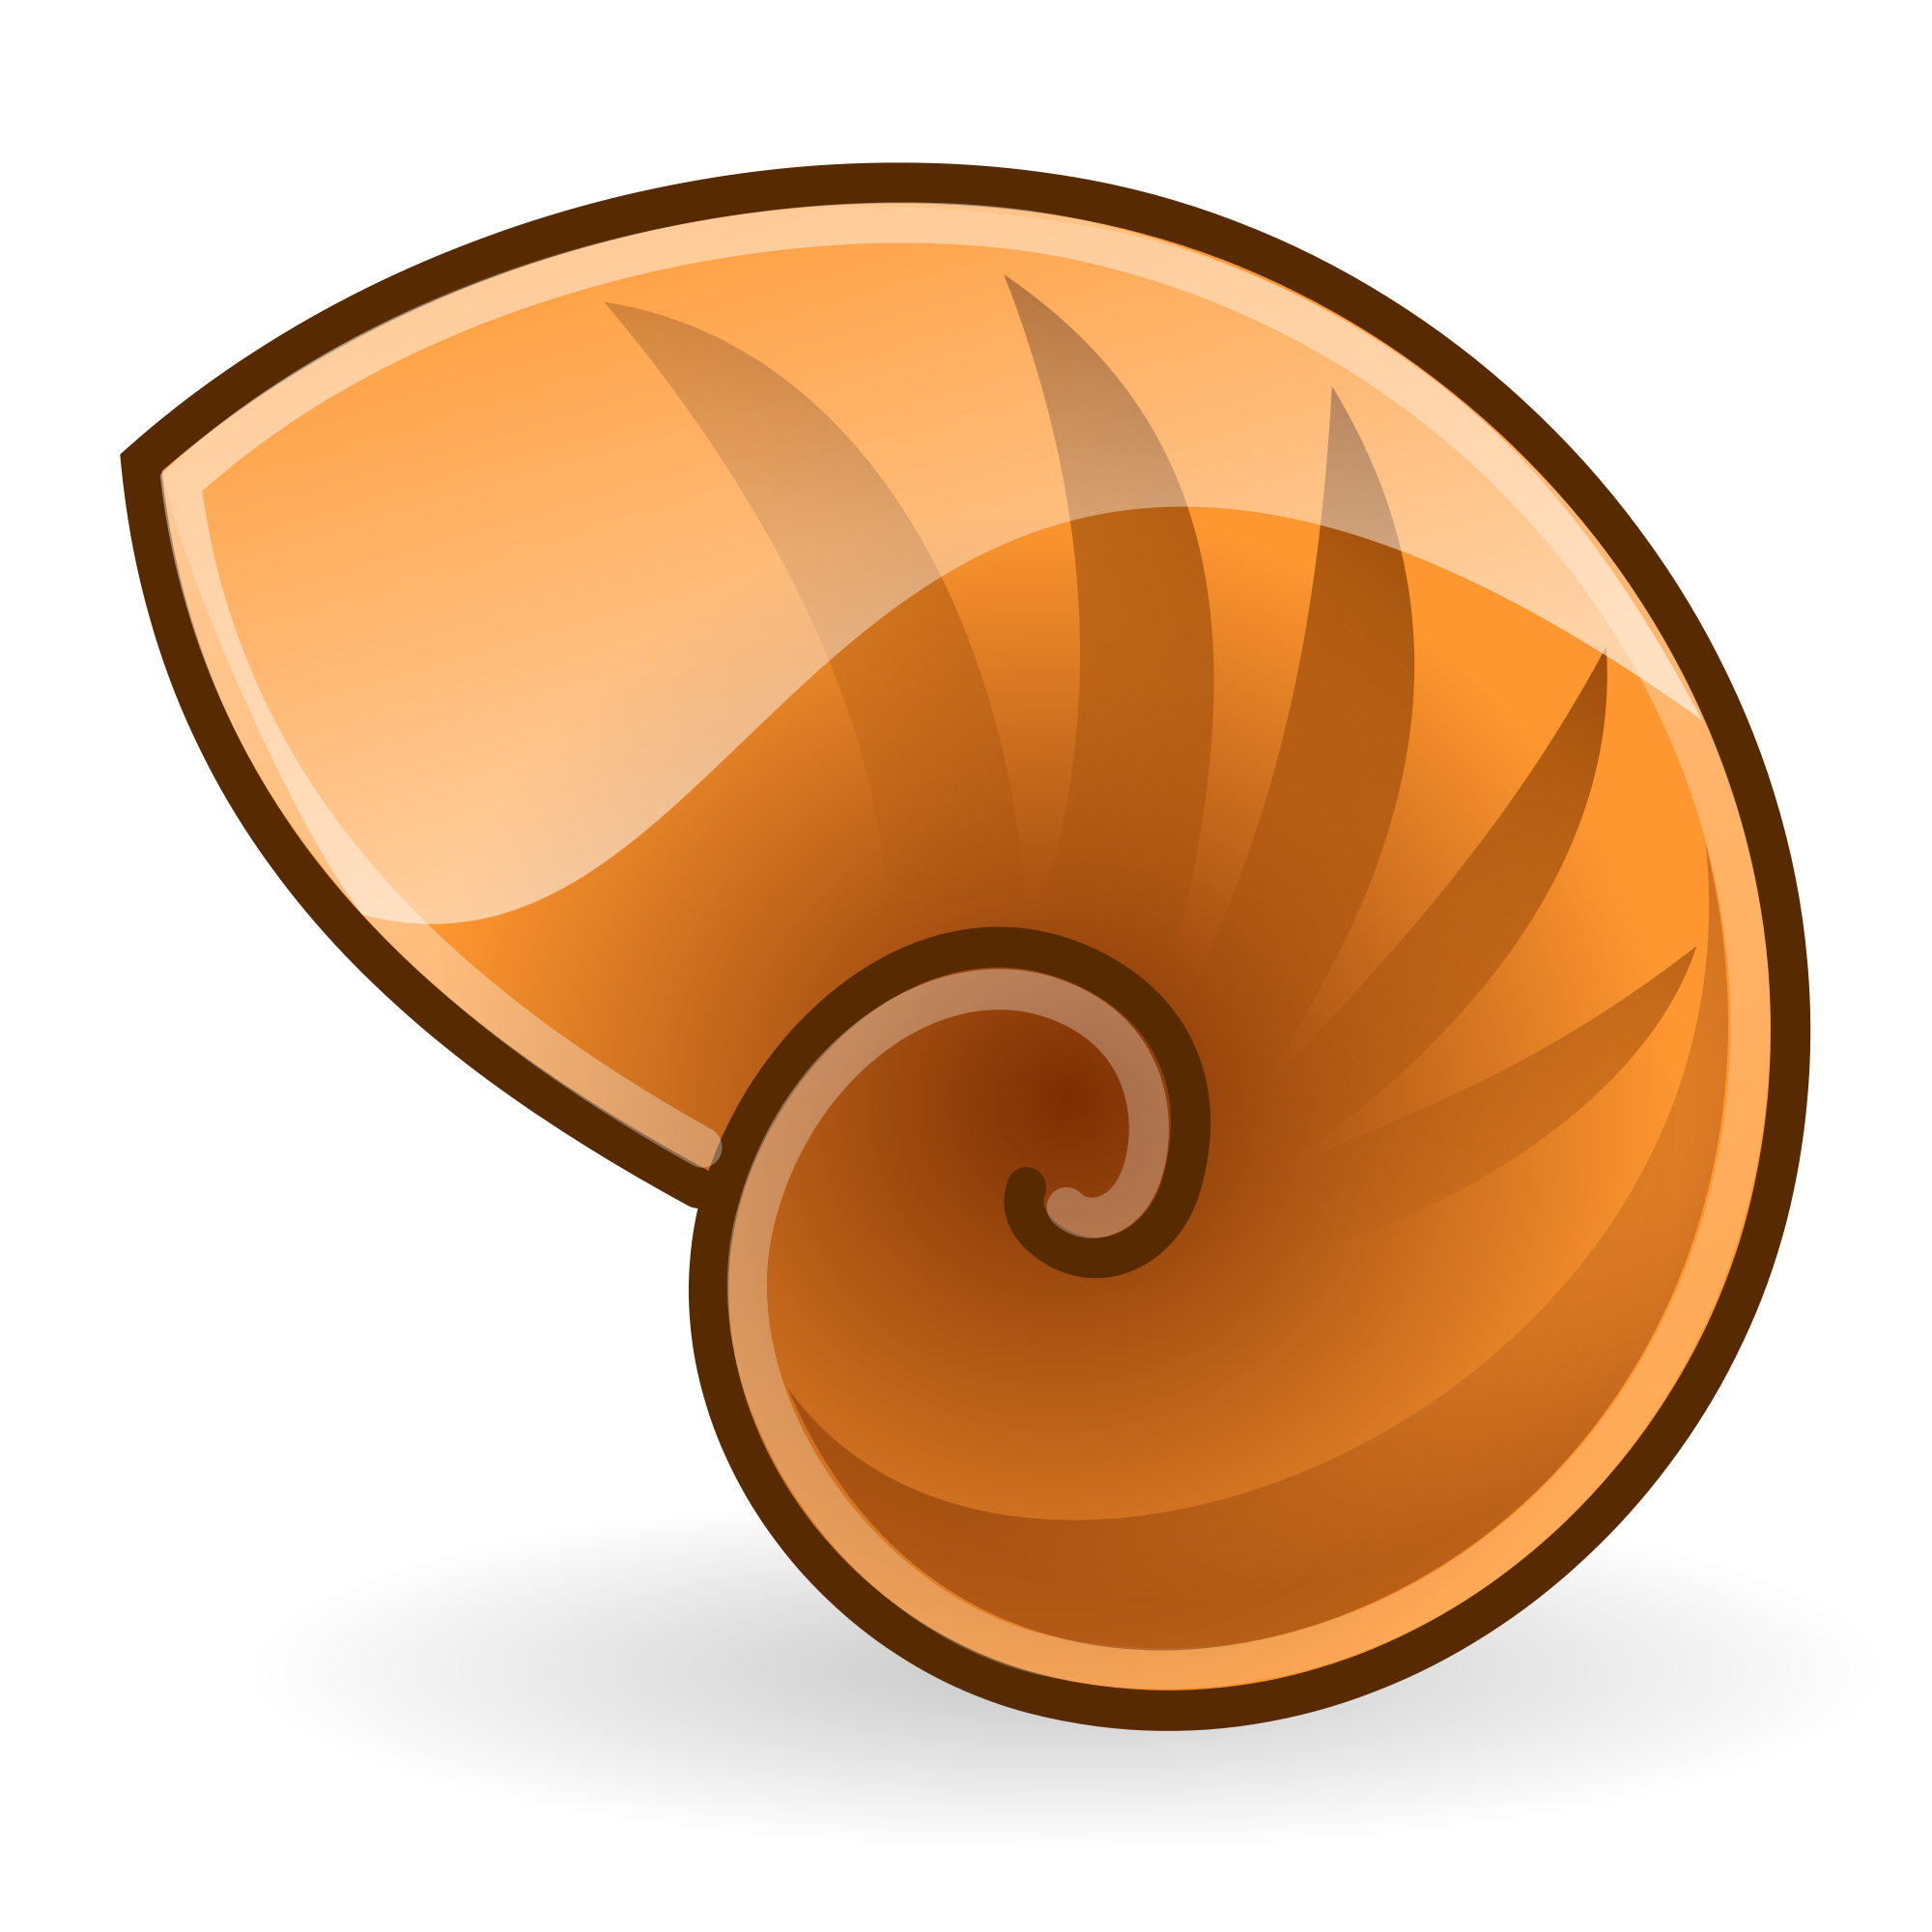 Files Shell Gnome Icons Manager Computer File PNG Image